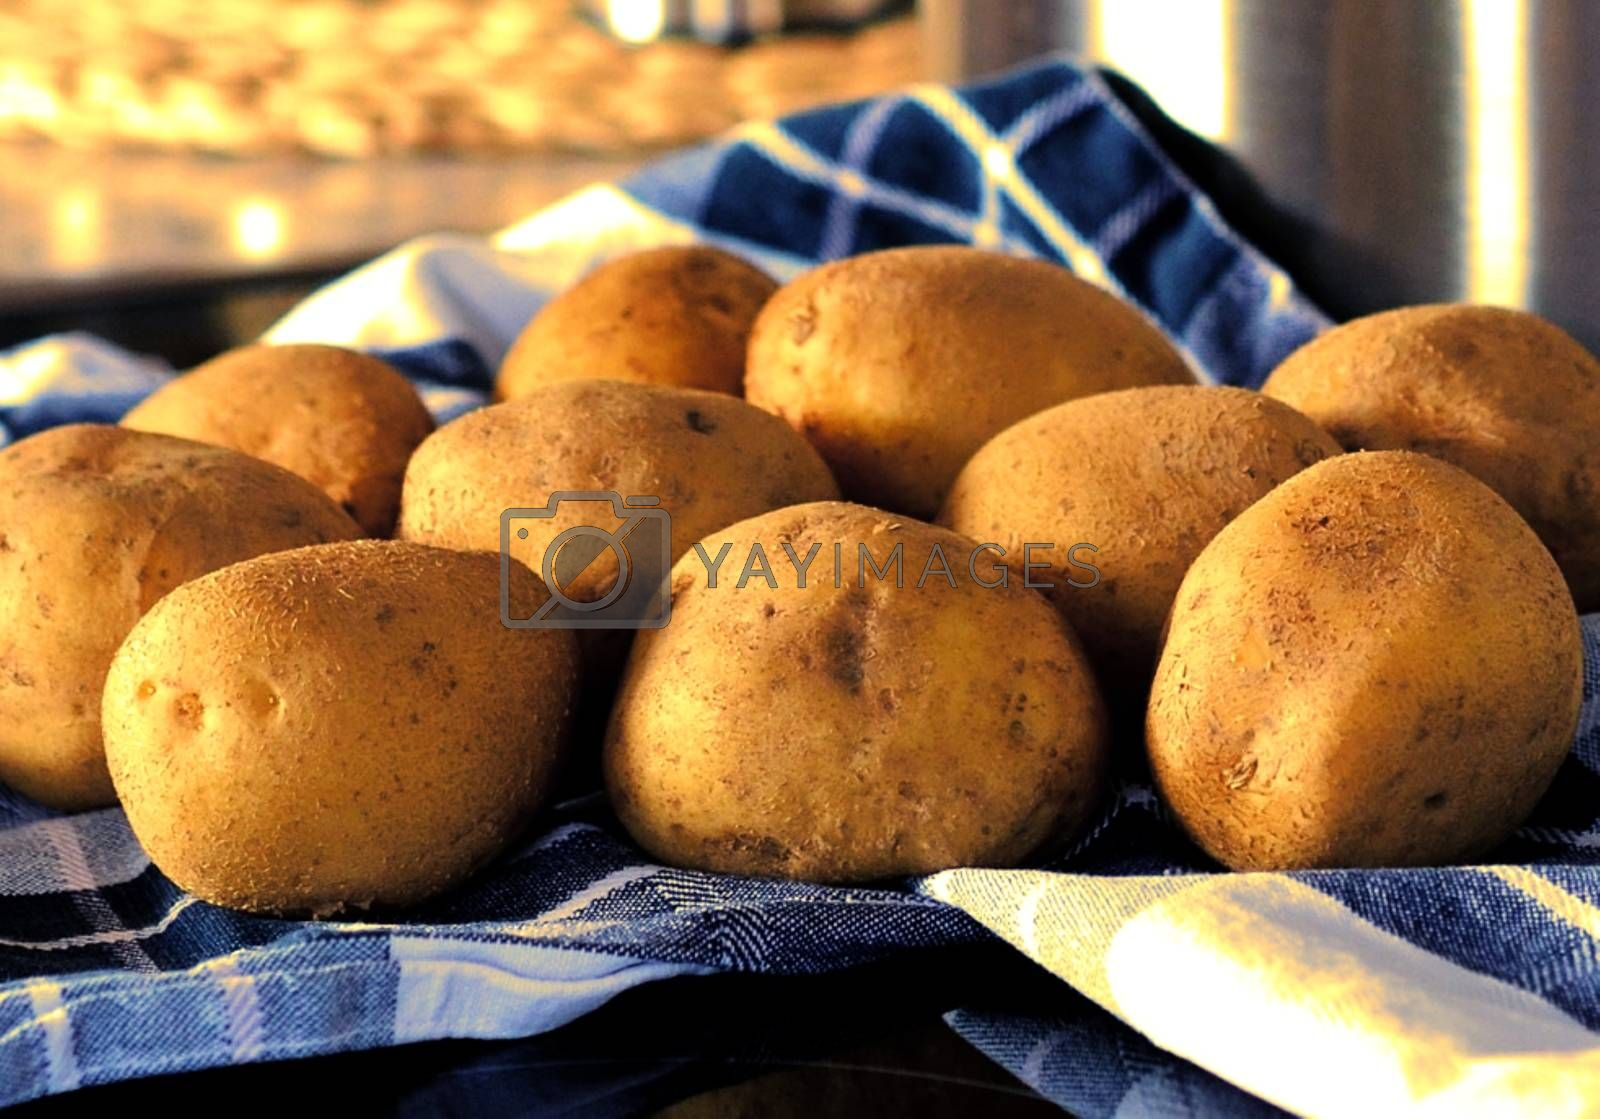 Royalty free image of Potatoes on the blue kitchen towel by balage941